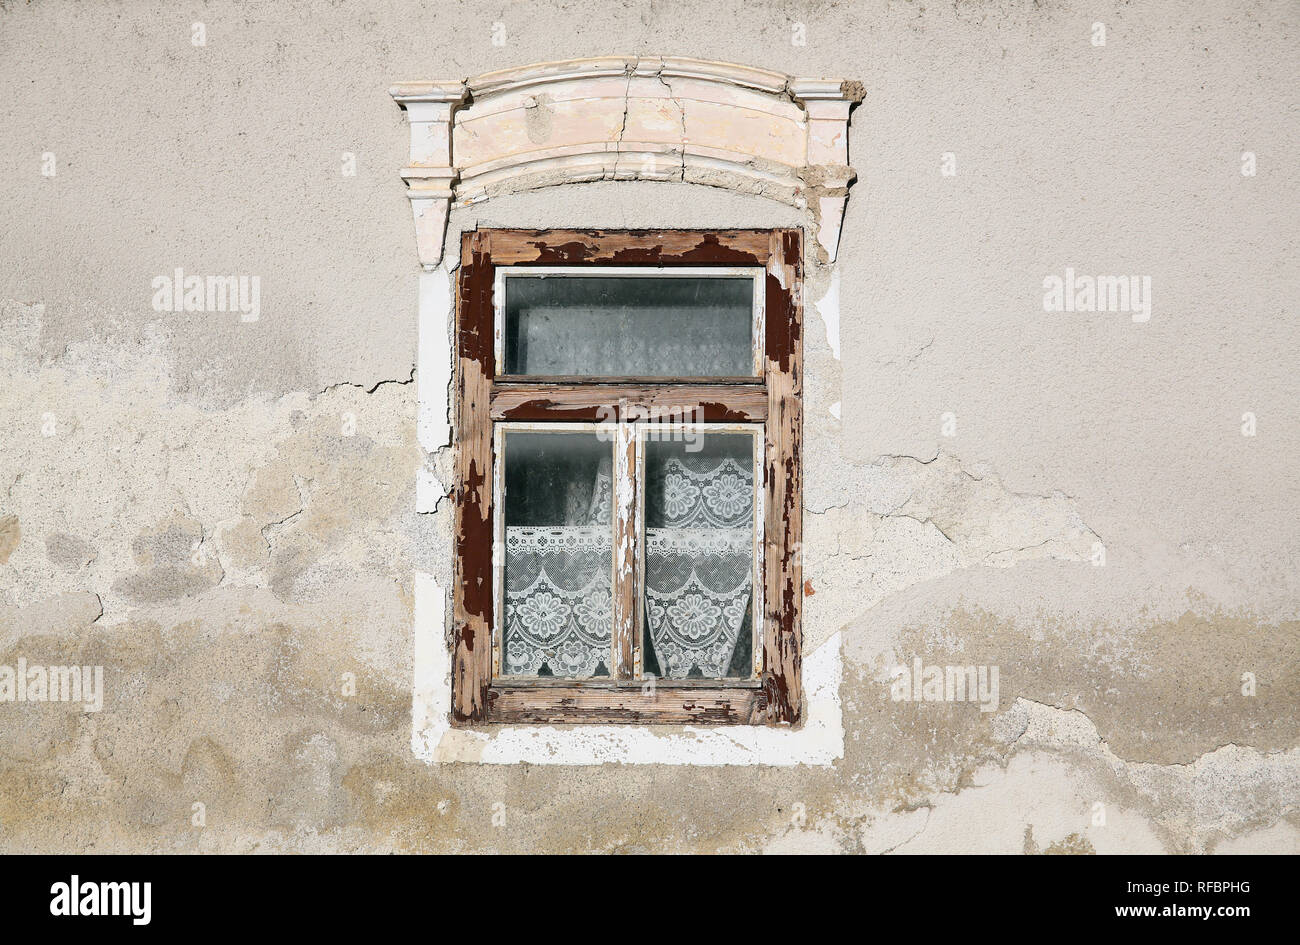 Weather worn wooden window on the house. - Stock Image